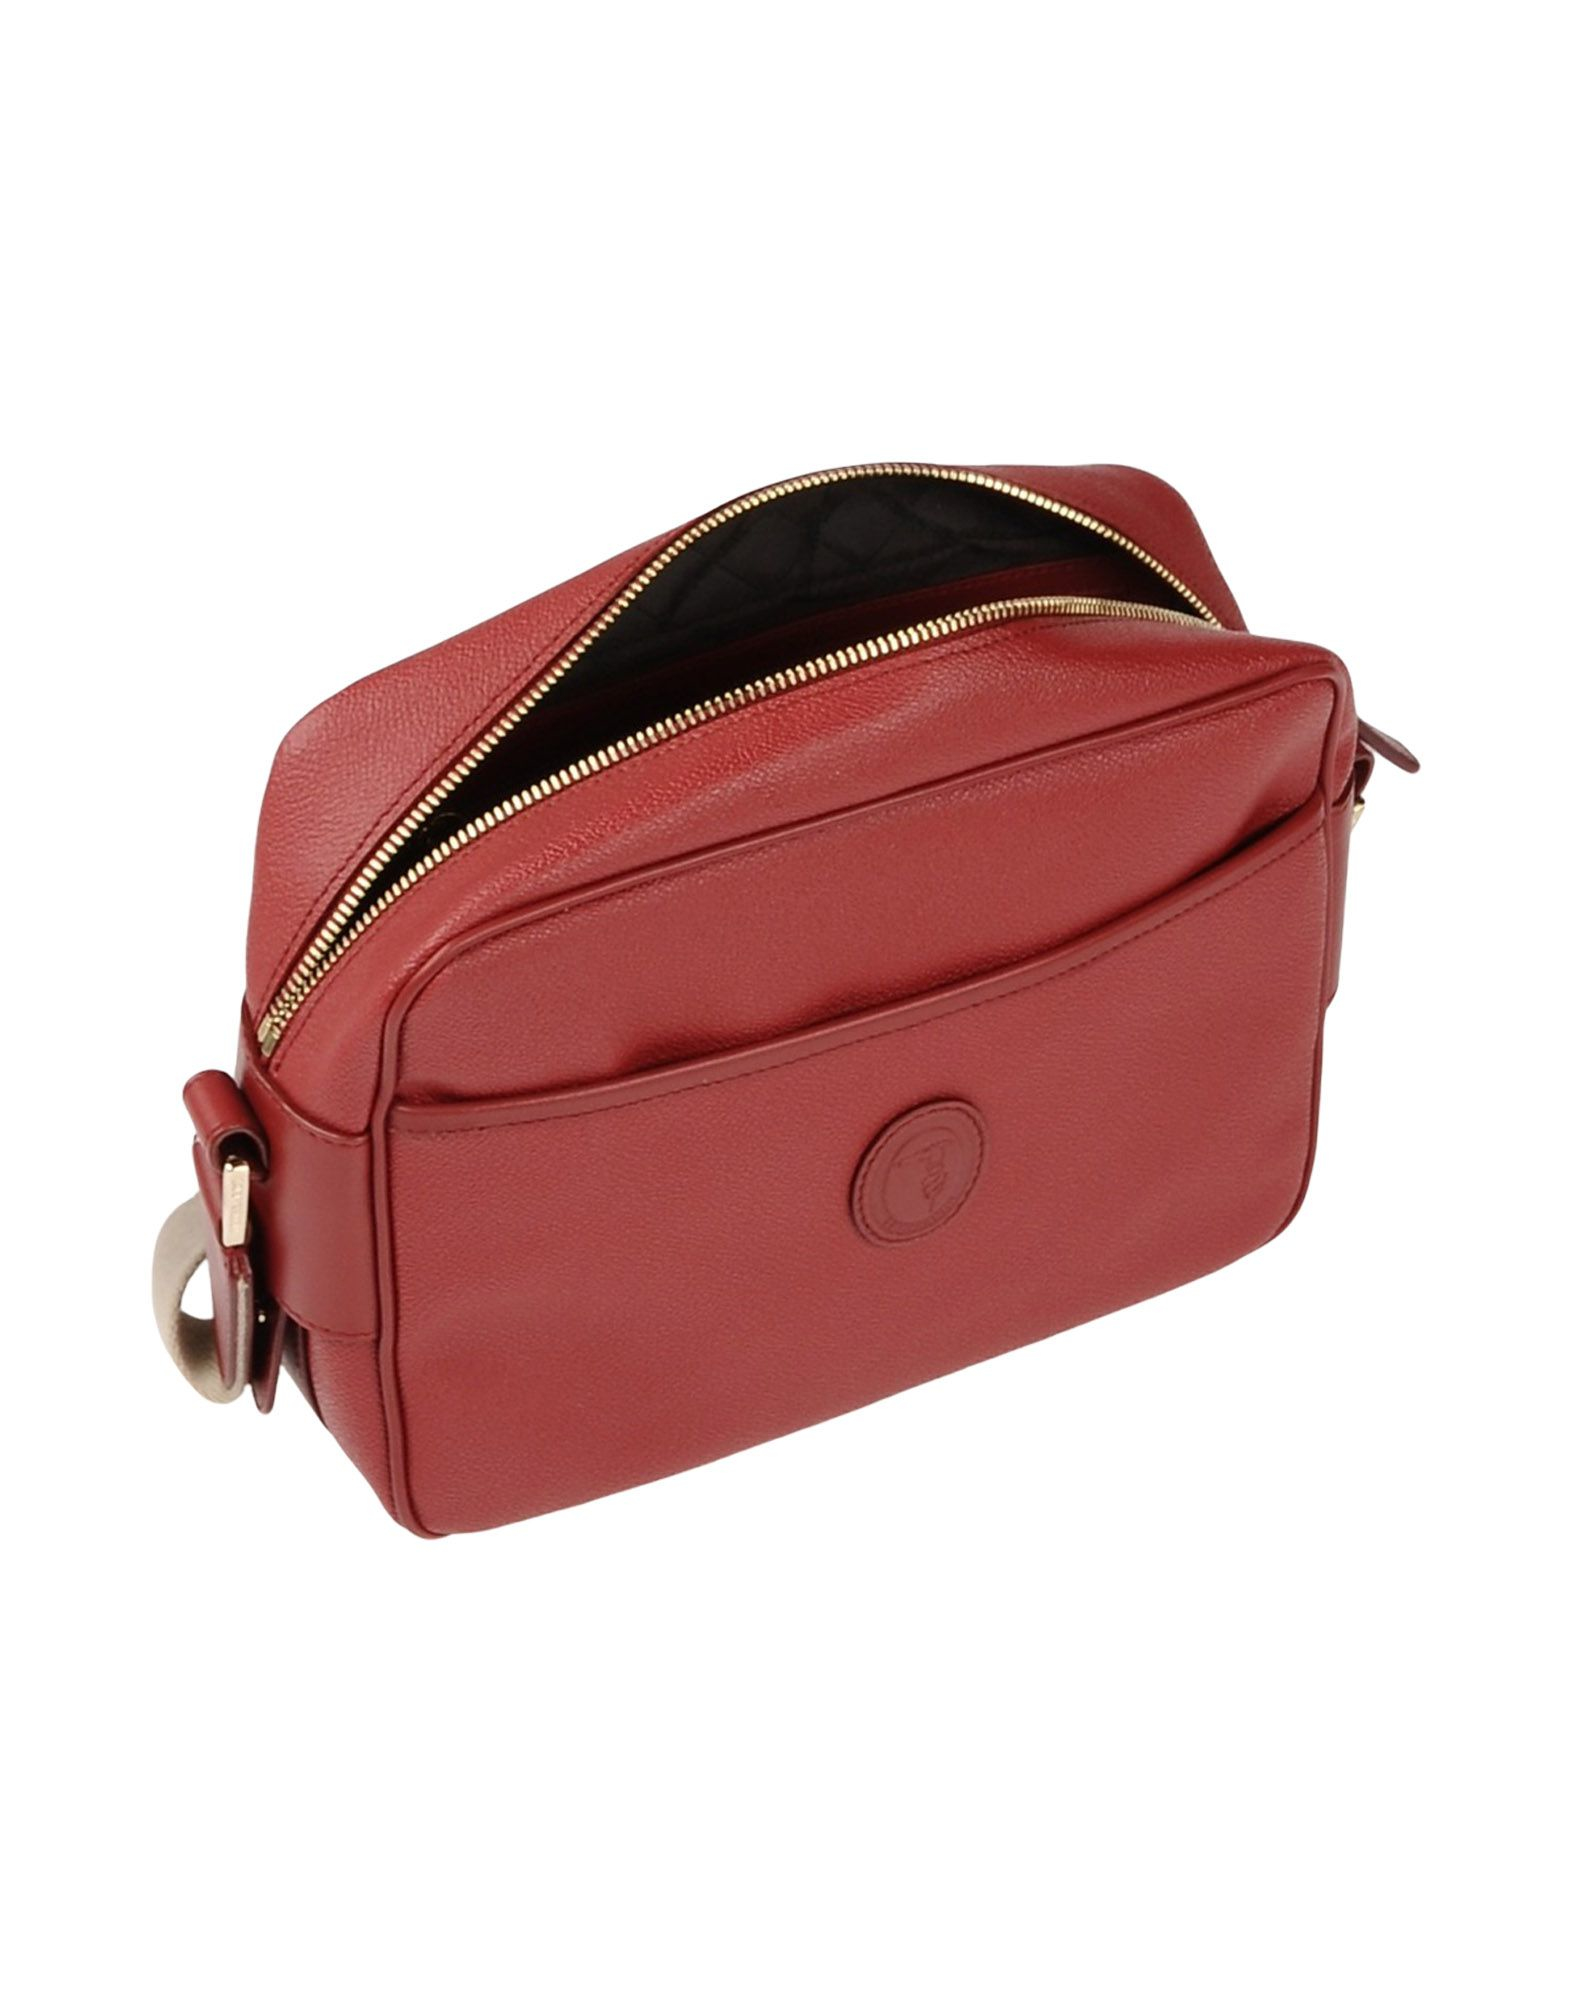 Trussardi Leather Cross-body Bag in Brick Red (Red)